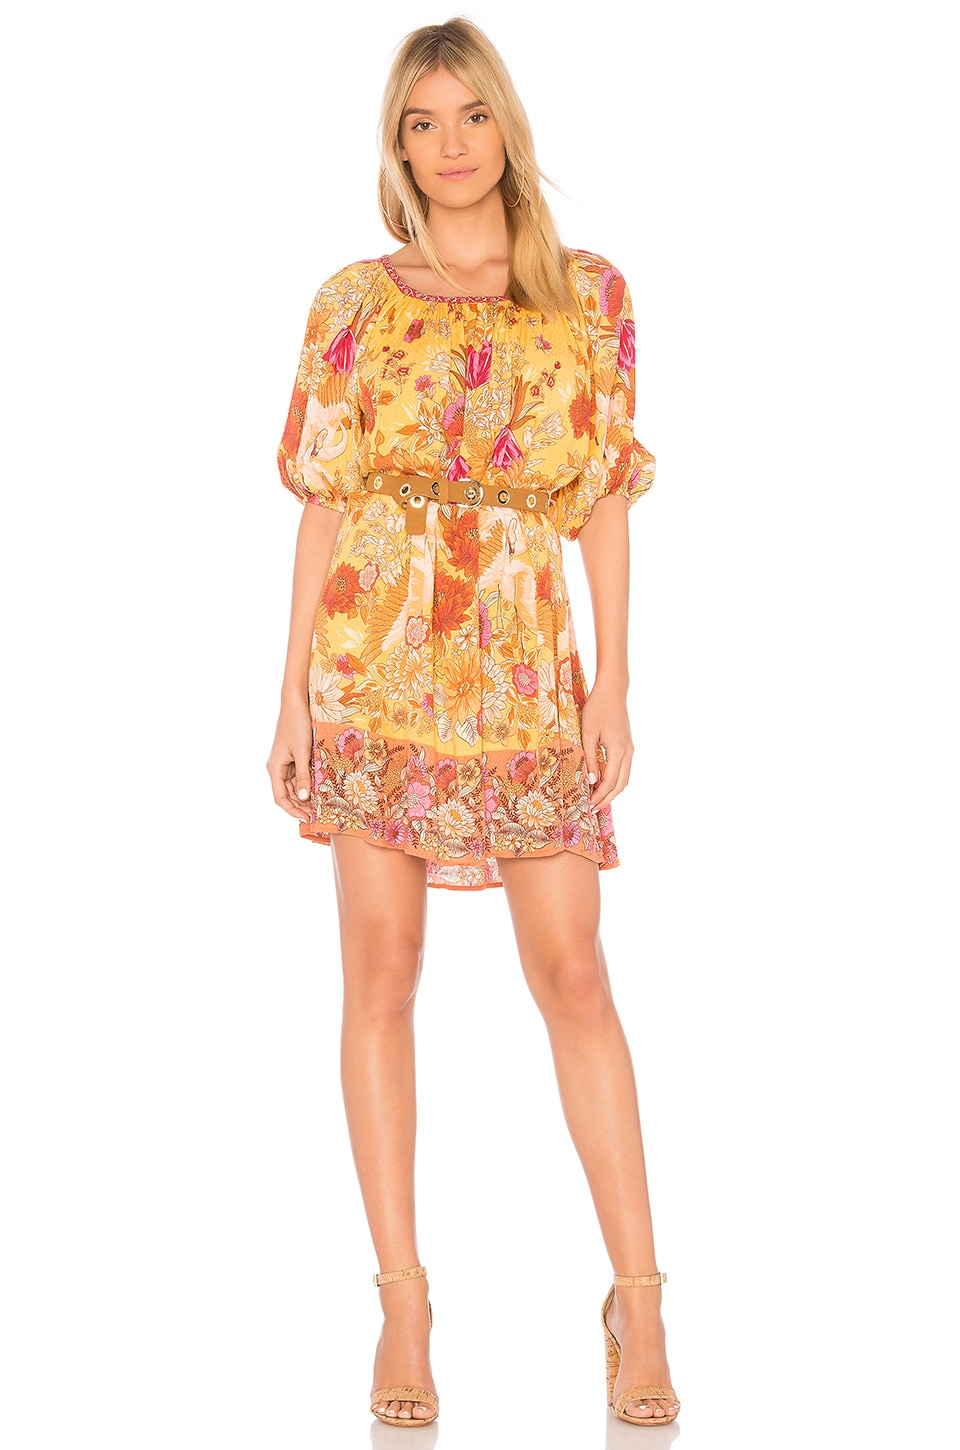 Spell & The Gypsy Collective Siren Song Smock Dress in Marigold